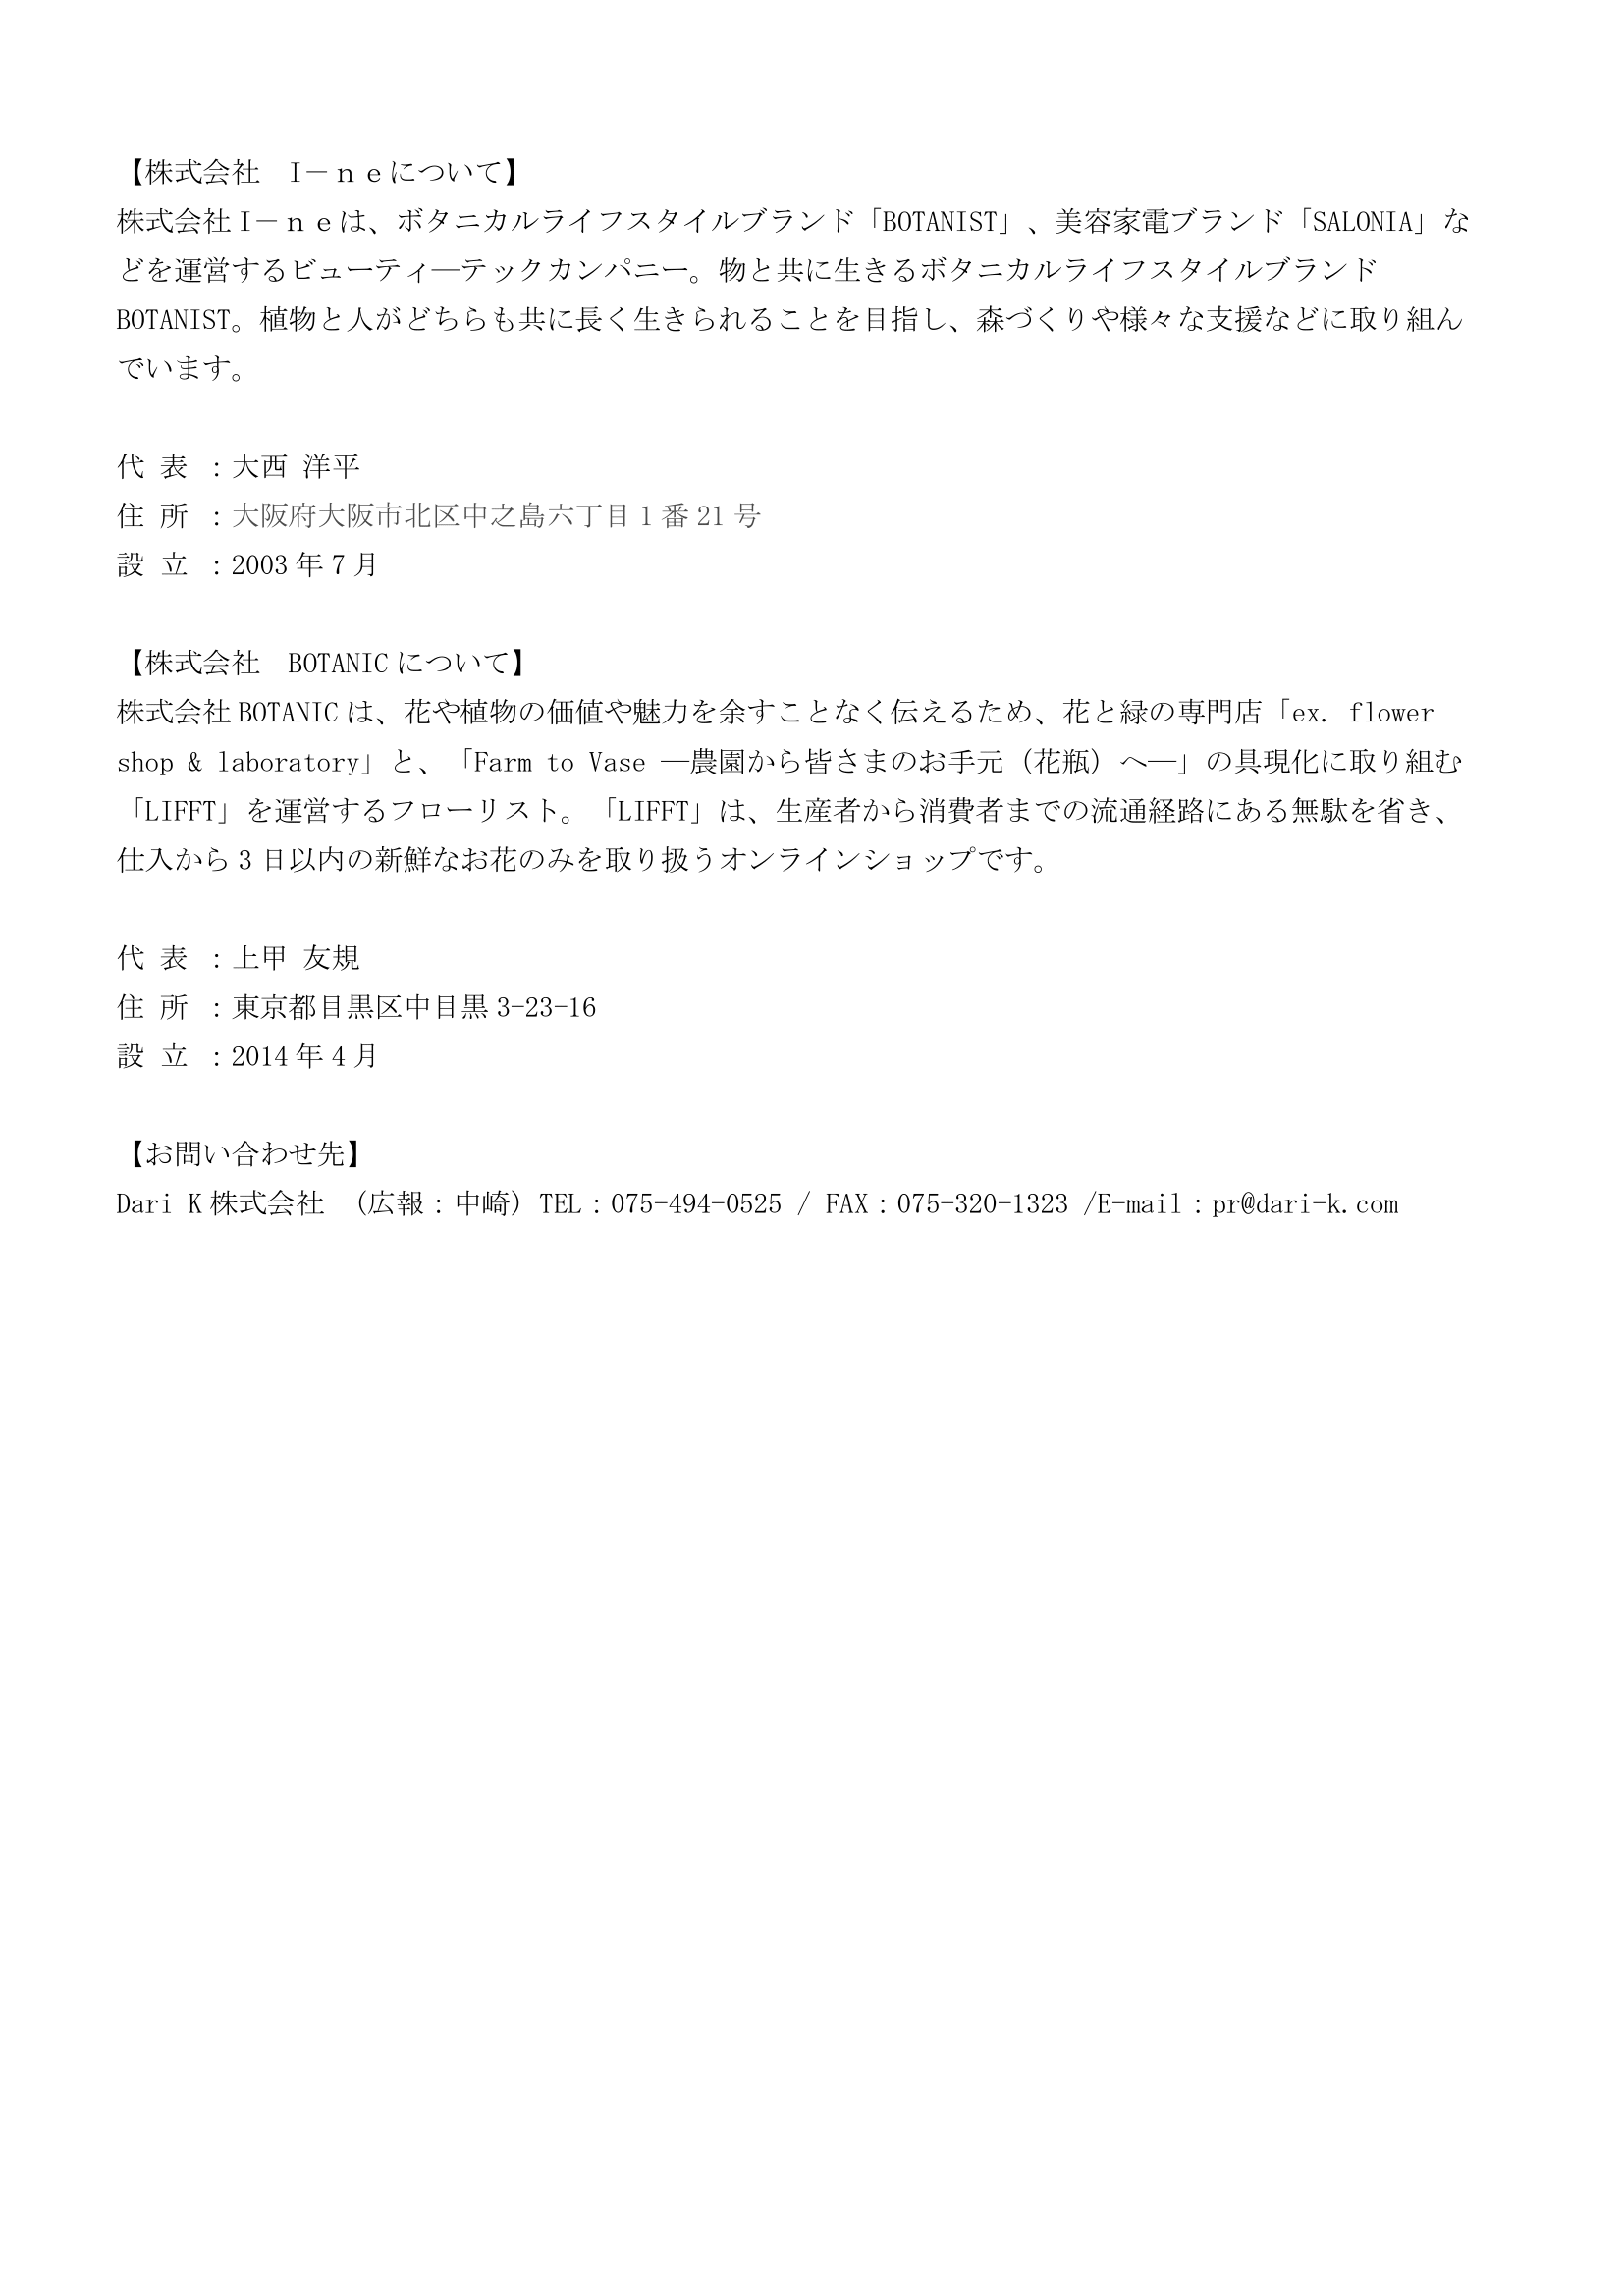 Press Release210423-母の日コラボギフト-3